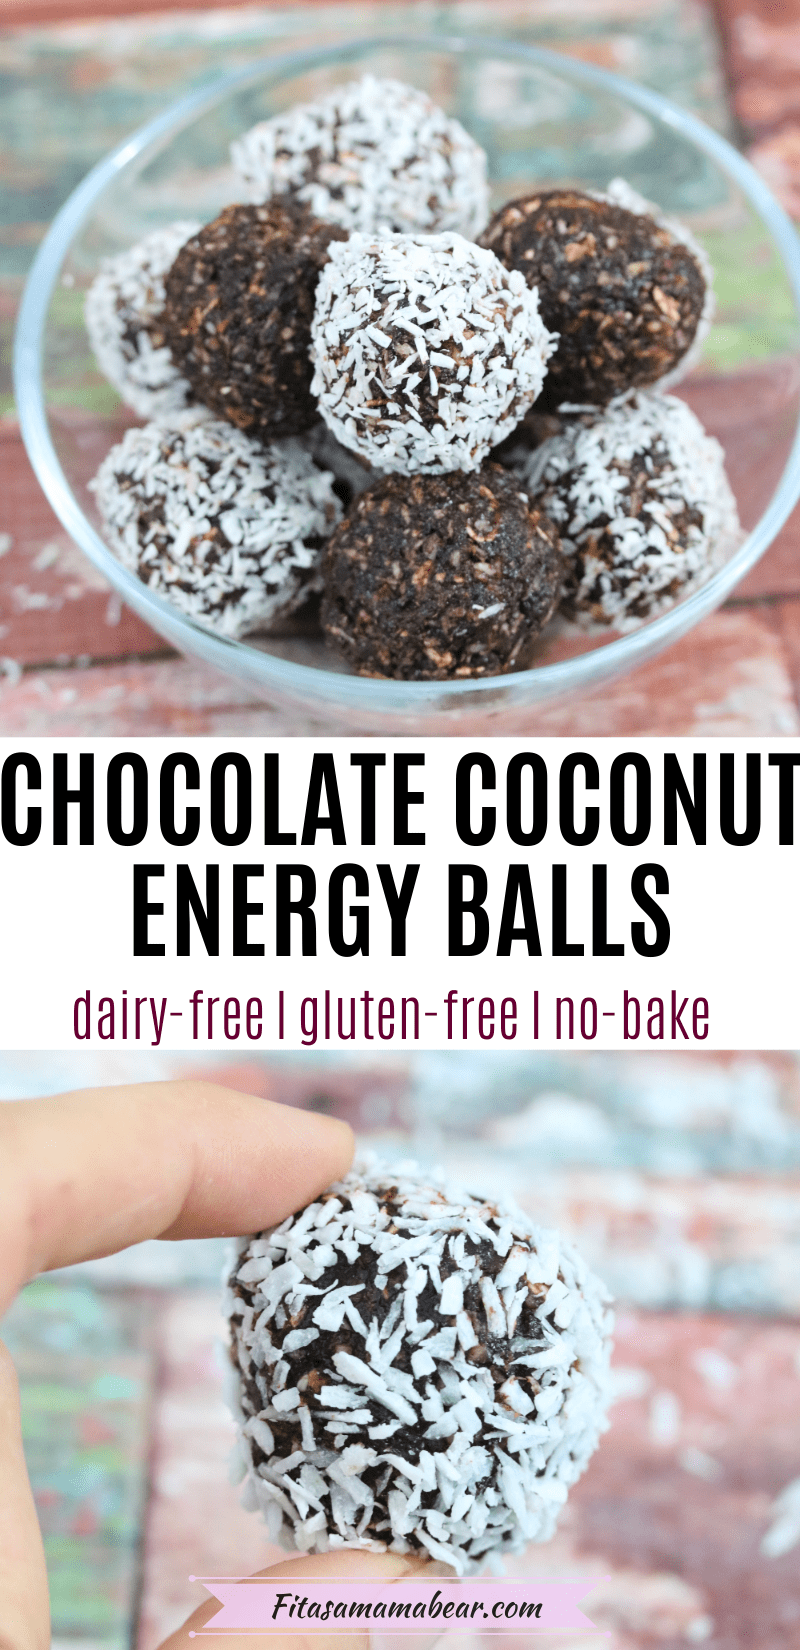 Pinterest image with text: two images, the top of a bowl of chocolate coconut energy balls and the bottom of fingers holding an energy bite up close